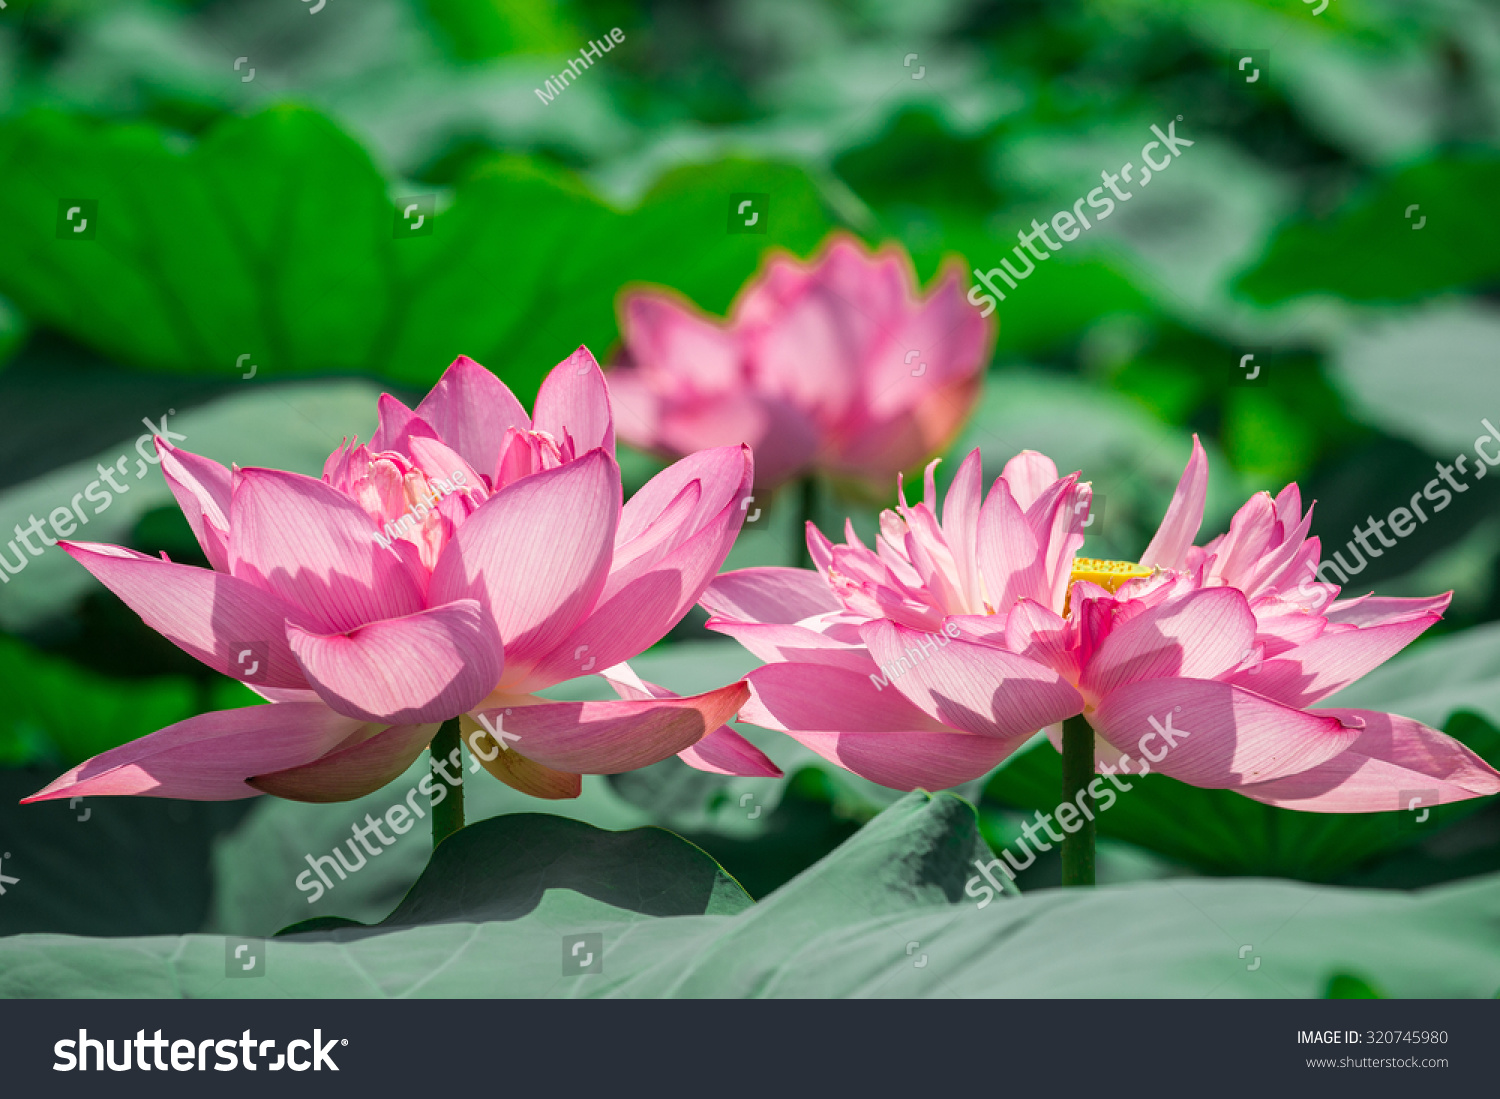 Lotus flower background lotus symbol vietnamese stock photo lotus flower background lotus is symbol for vietnamese mightylinksfo